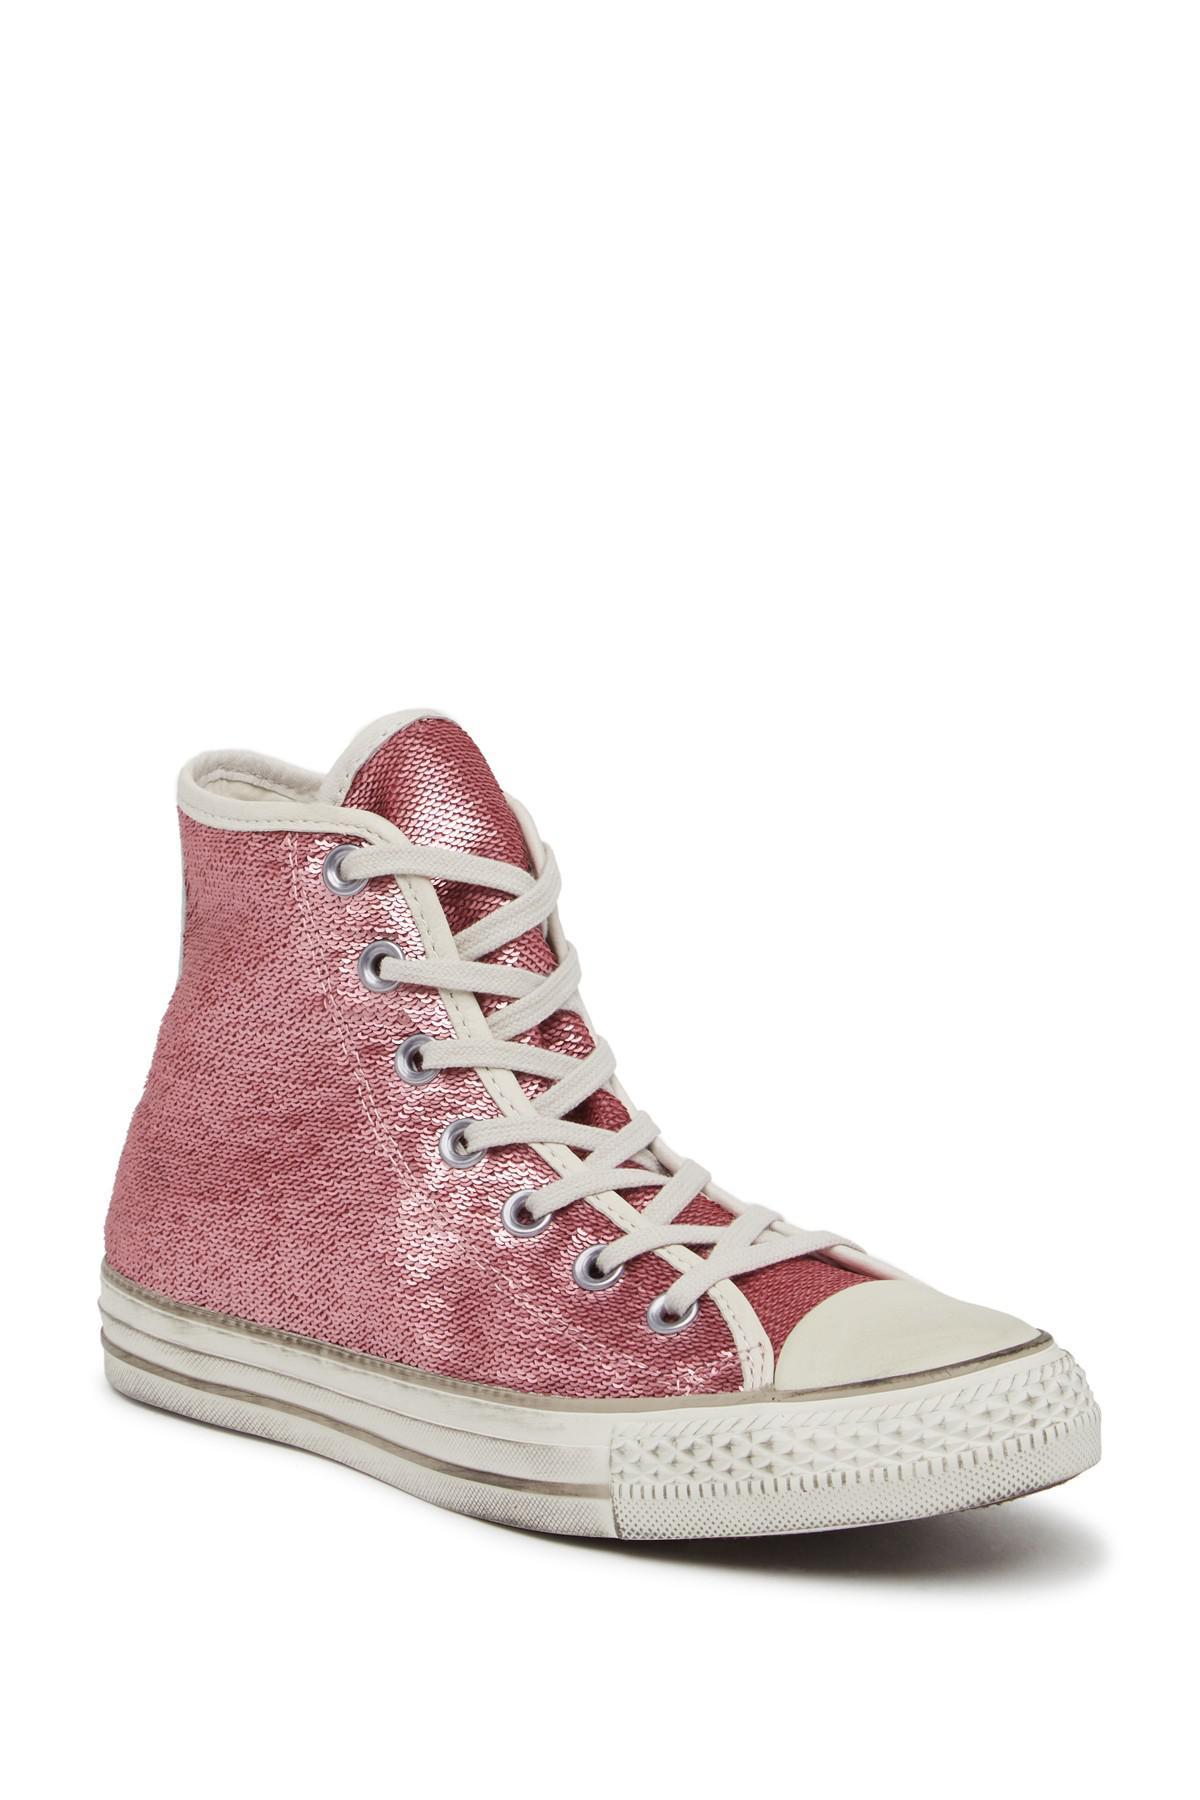 138c67bf1359 Gallery. Previously sold at  Nordstrom Rack · Women s Converse Chuck Taylor  ...